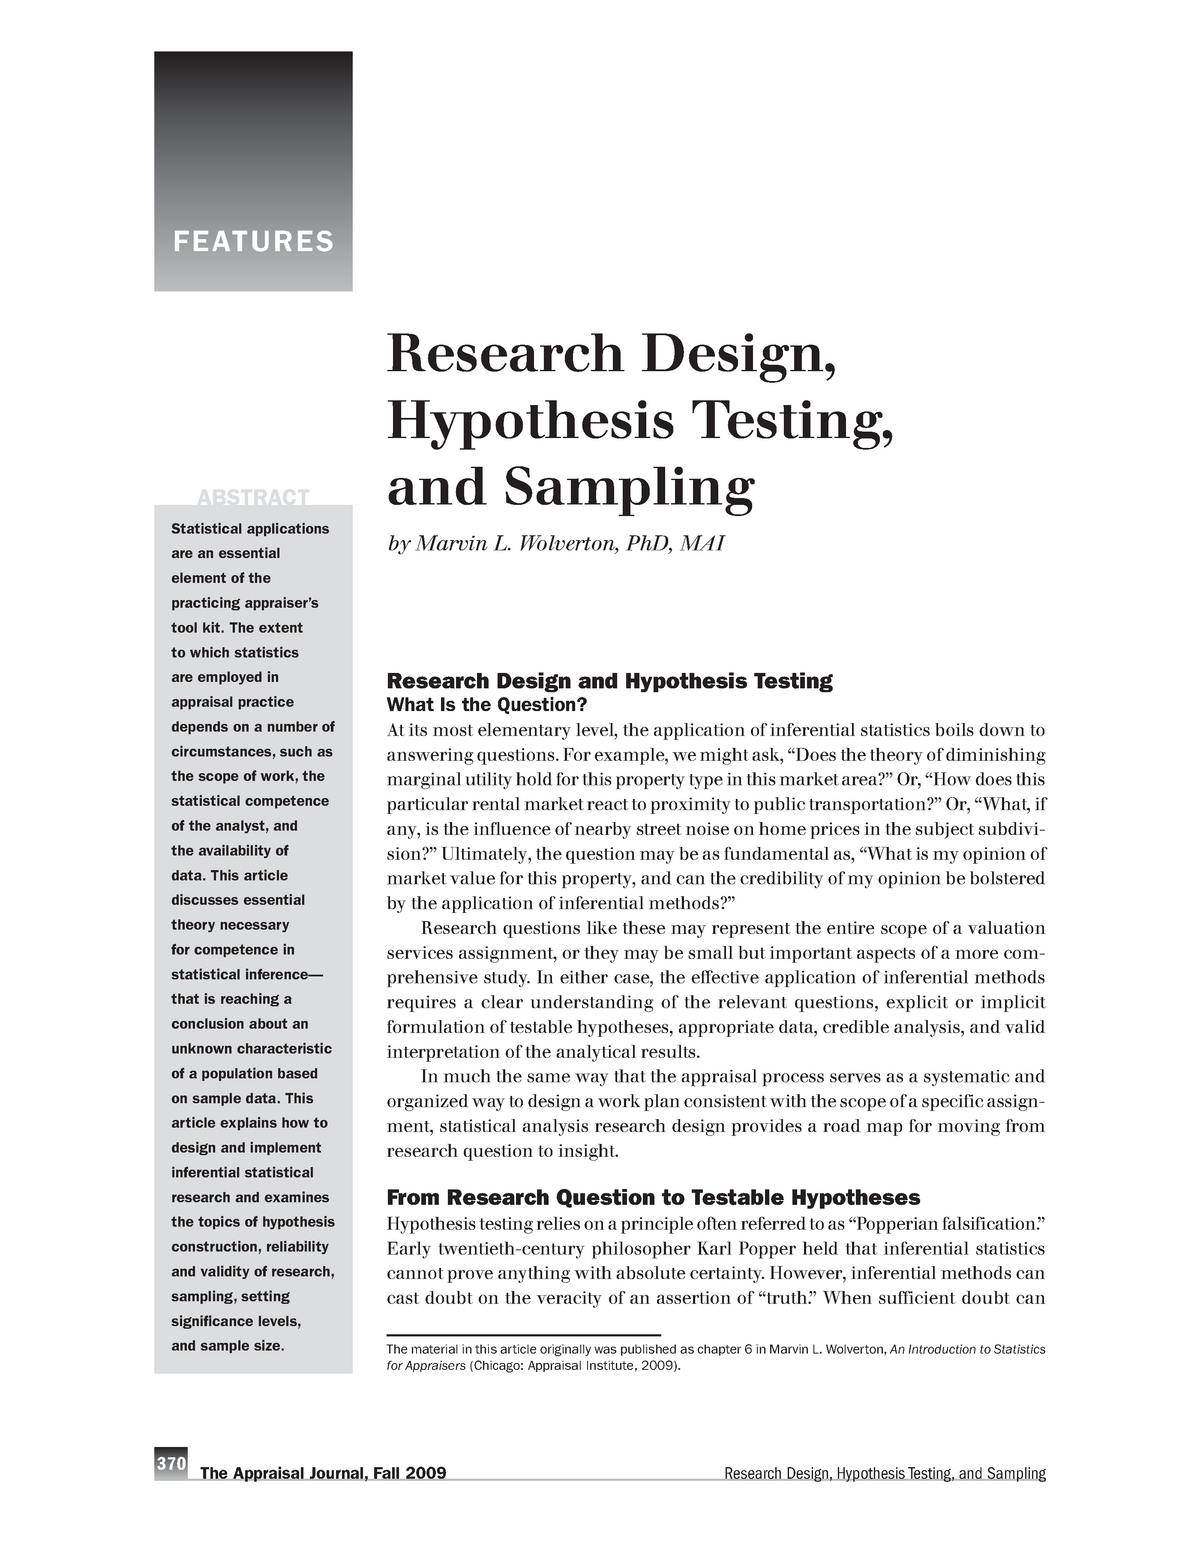 Research Design, Hypothesis Testing, and Sampling - MLIE-102